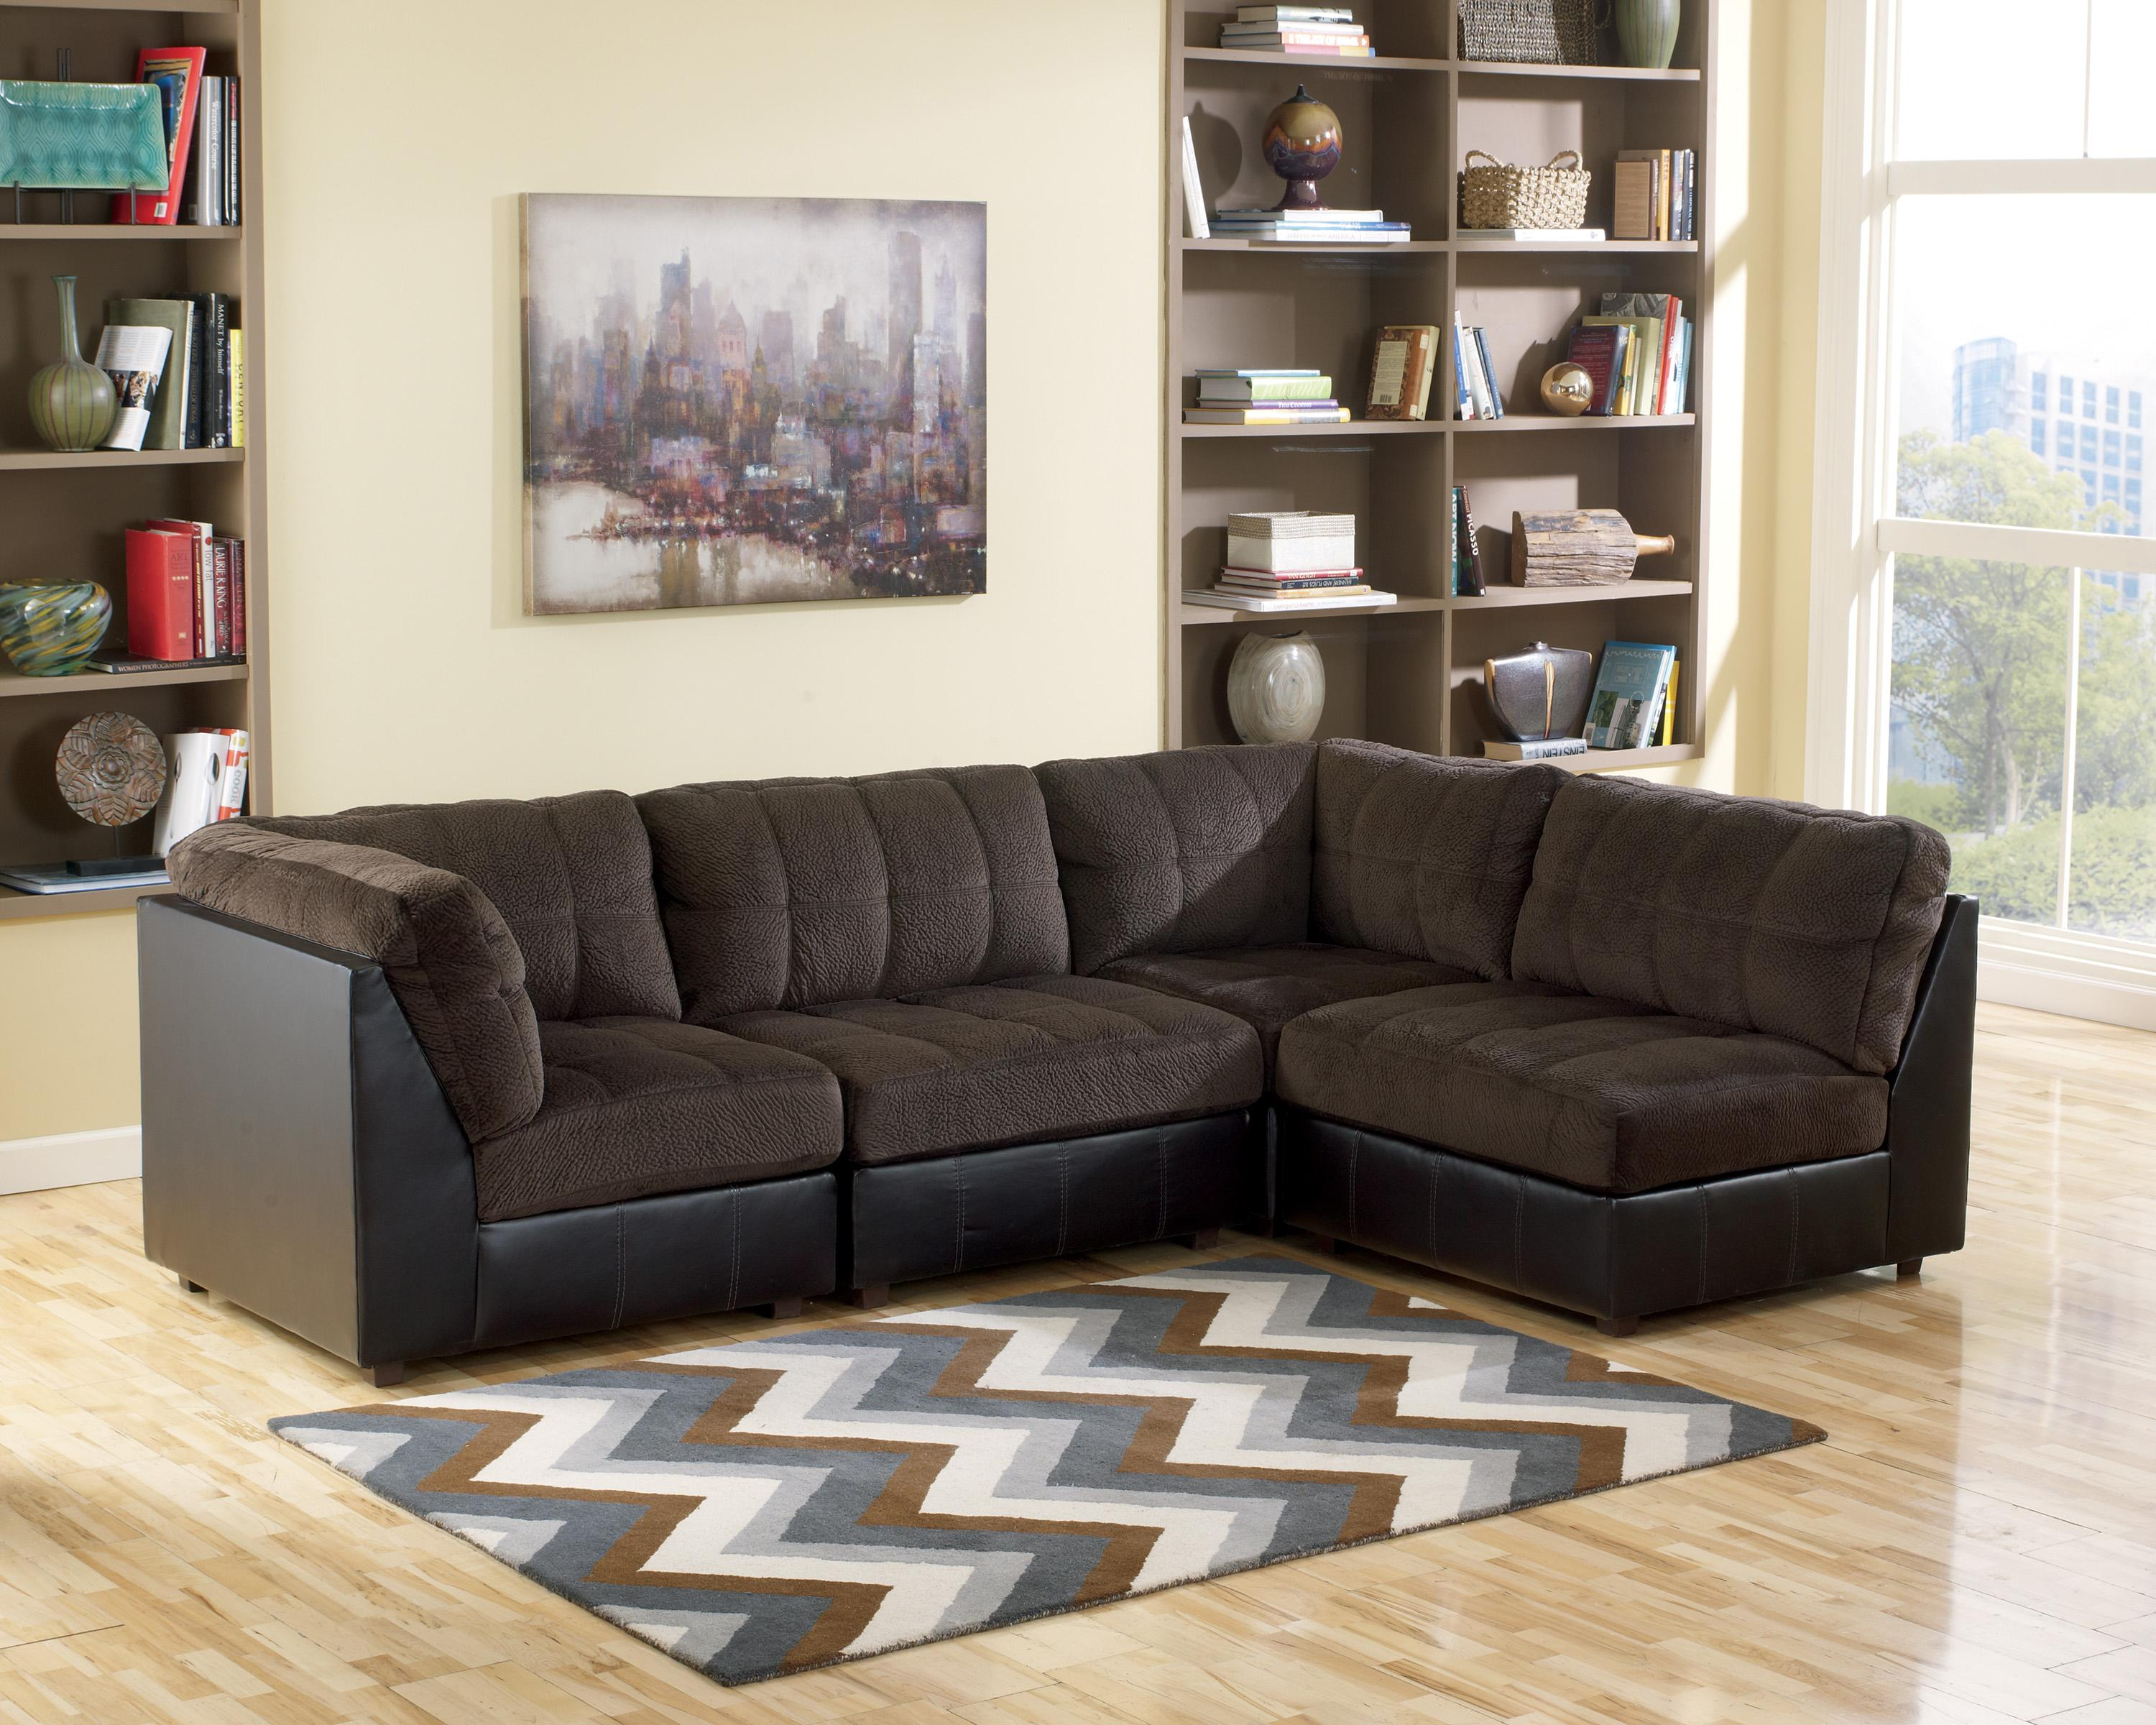 Signature Design By Ashley Hobokin Chocolate Contemporary 4  # Muebles En New Haven Ct